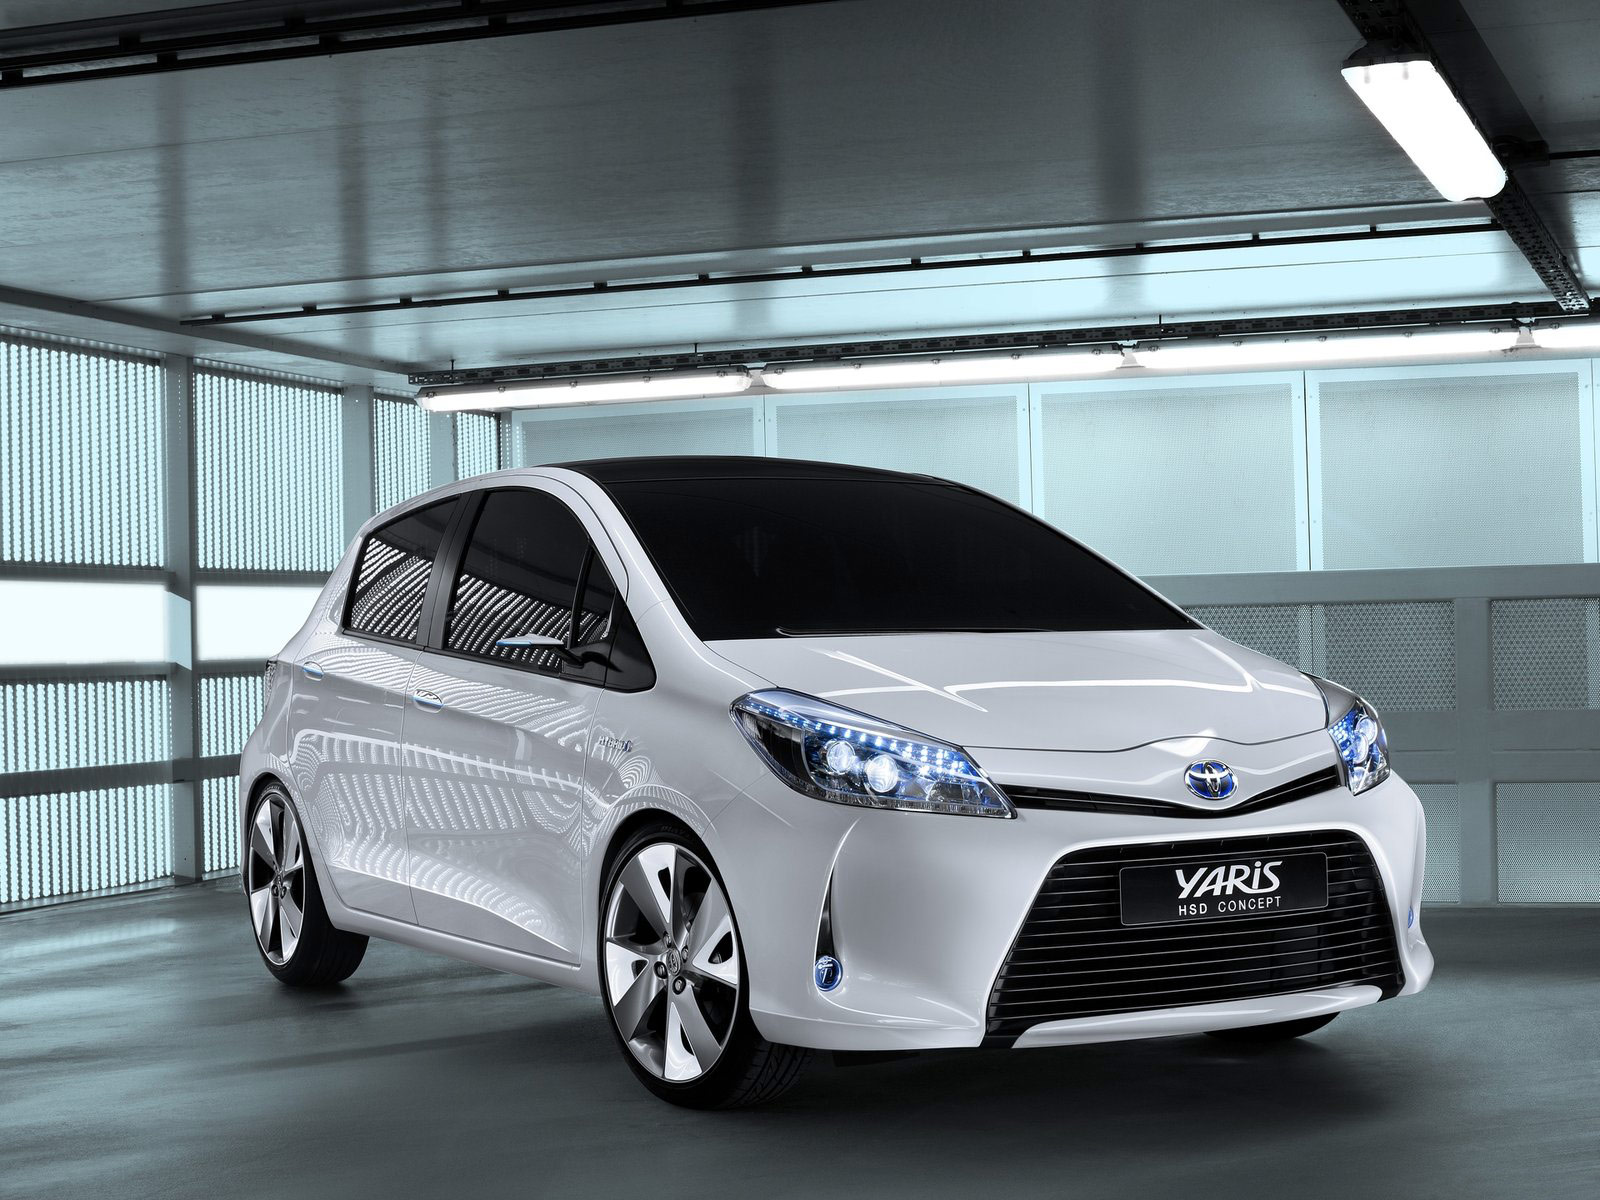 toyota yaris hsd concept photos 2011 car accident lawyer. Black Bedroom Furniture Sets. Home Design Ideas